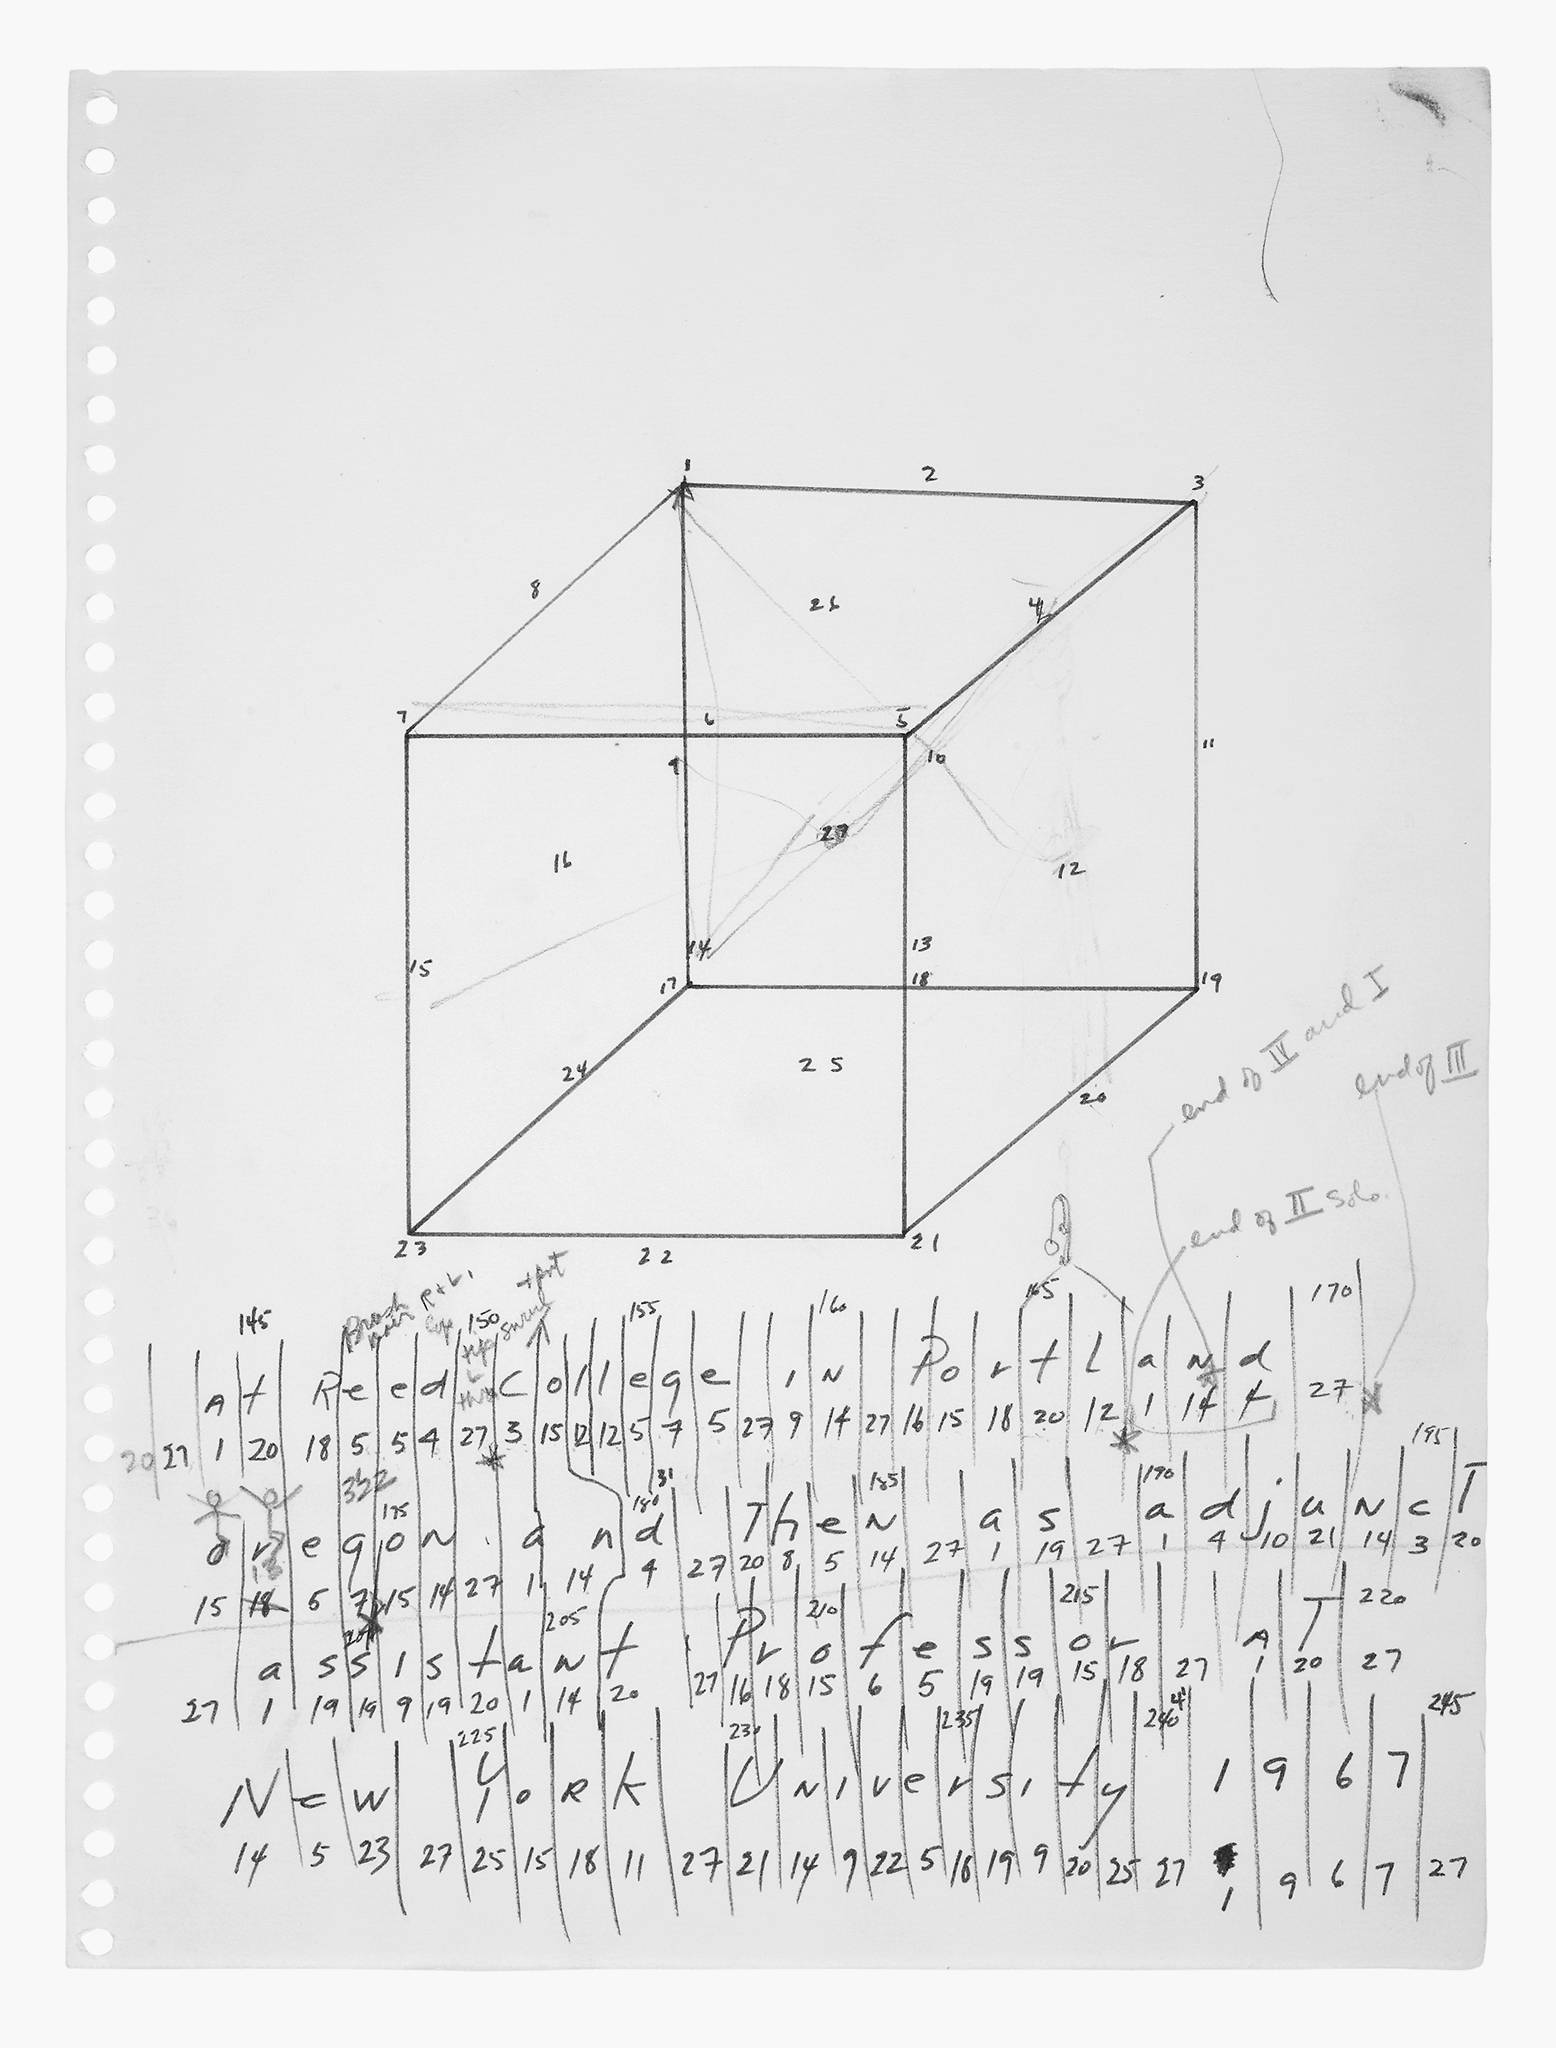 If You Couldnt See Me On Performativity Walker Art Center Draw A White Wire For Obvious Reasons Colors Dont Fig 12 Trisha Brown Untitled Locus 1975 Graphite Paper 18 X 15 1 9 16 In 5398 616 397 Cm Framed Collection The Artist